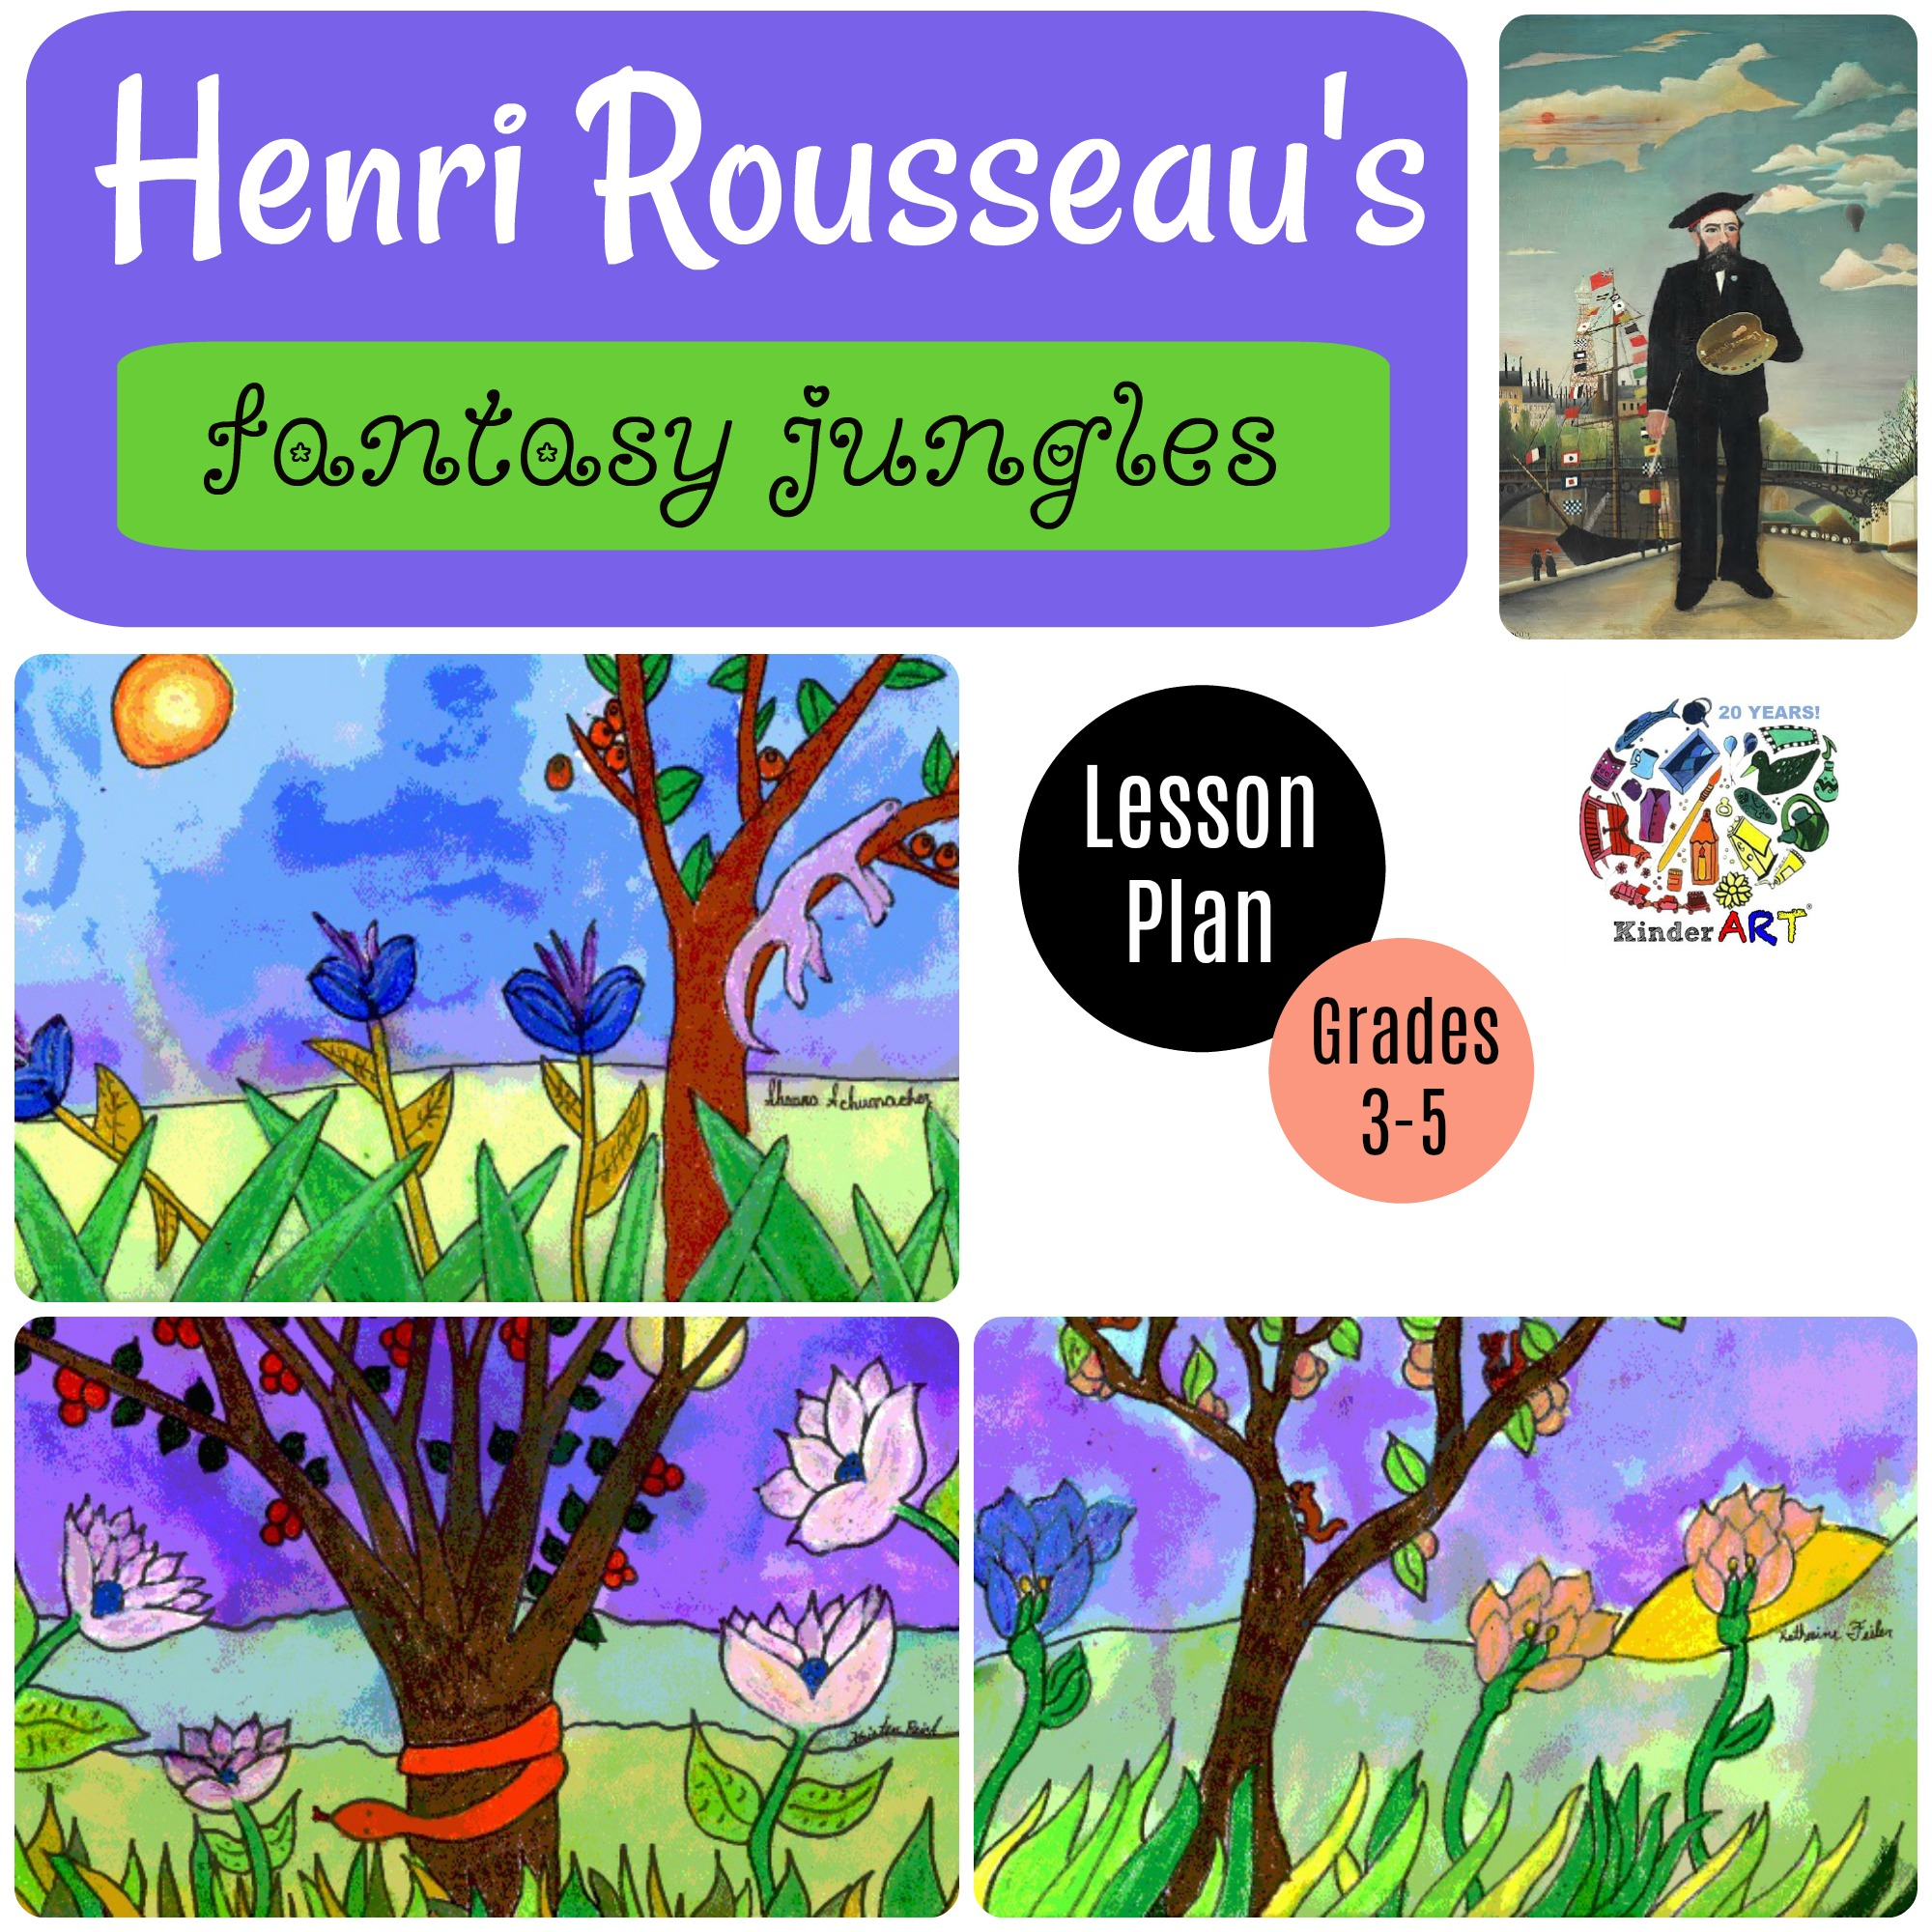 Henri Rousseau's Fantasty Jungles. Art lesson plan from KinderArt.com